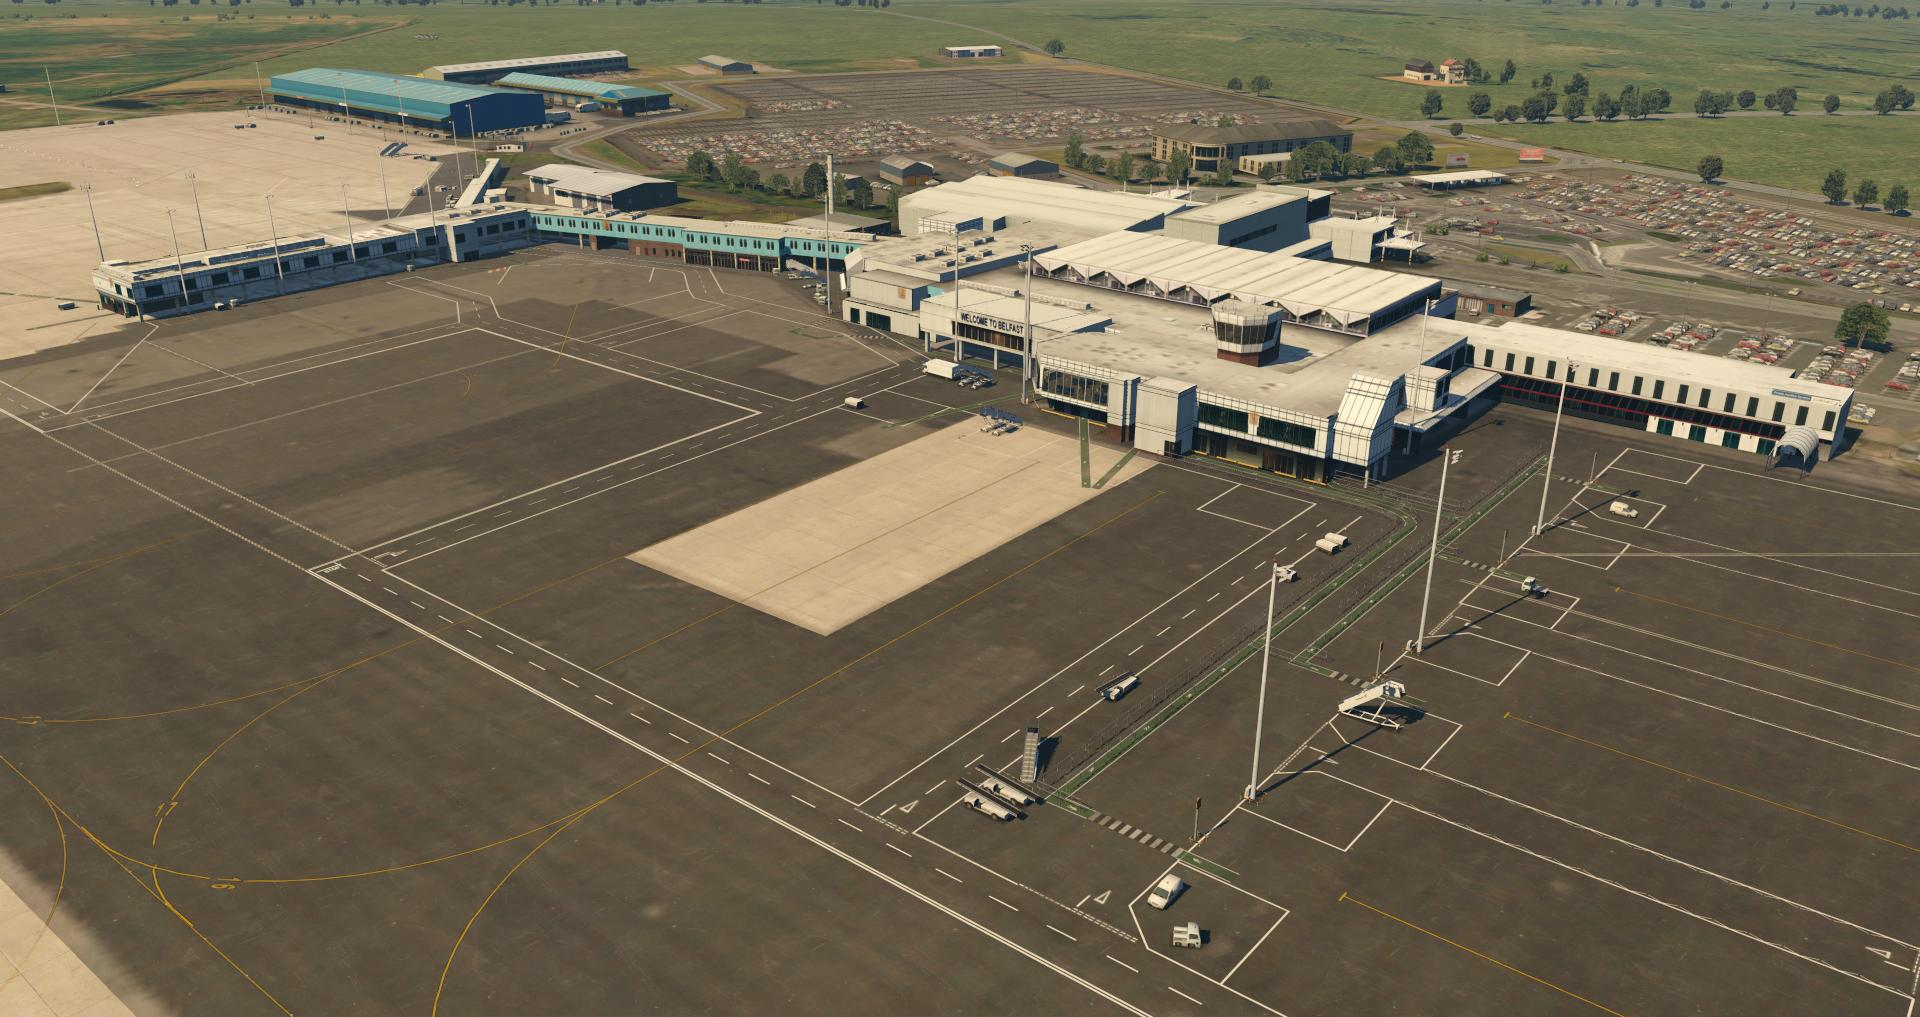 UK2000 Scenery Belfast Intl  Xtreme for X-Plane 11 Released